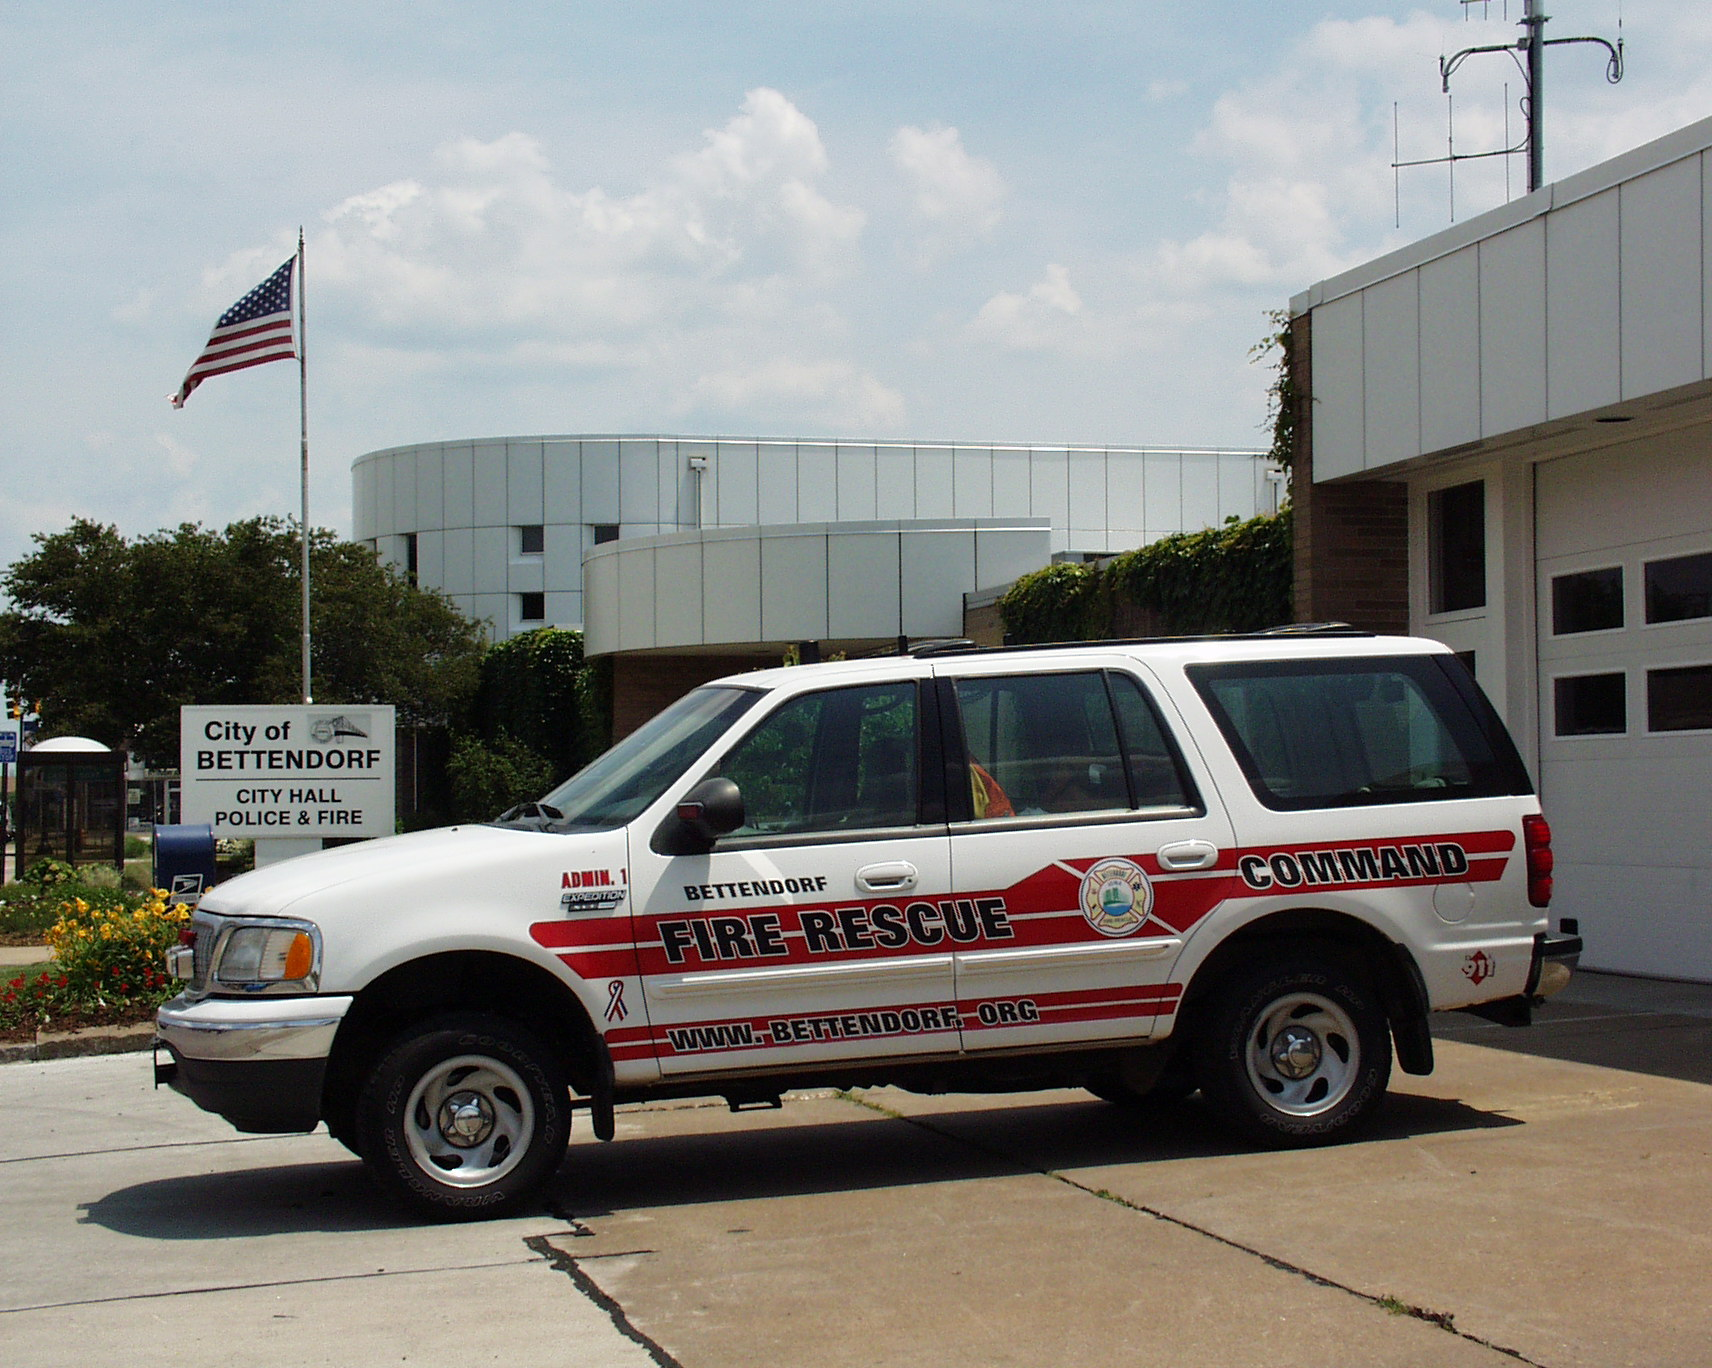 Bettendorf Fire Rescue And Emergency Services Department